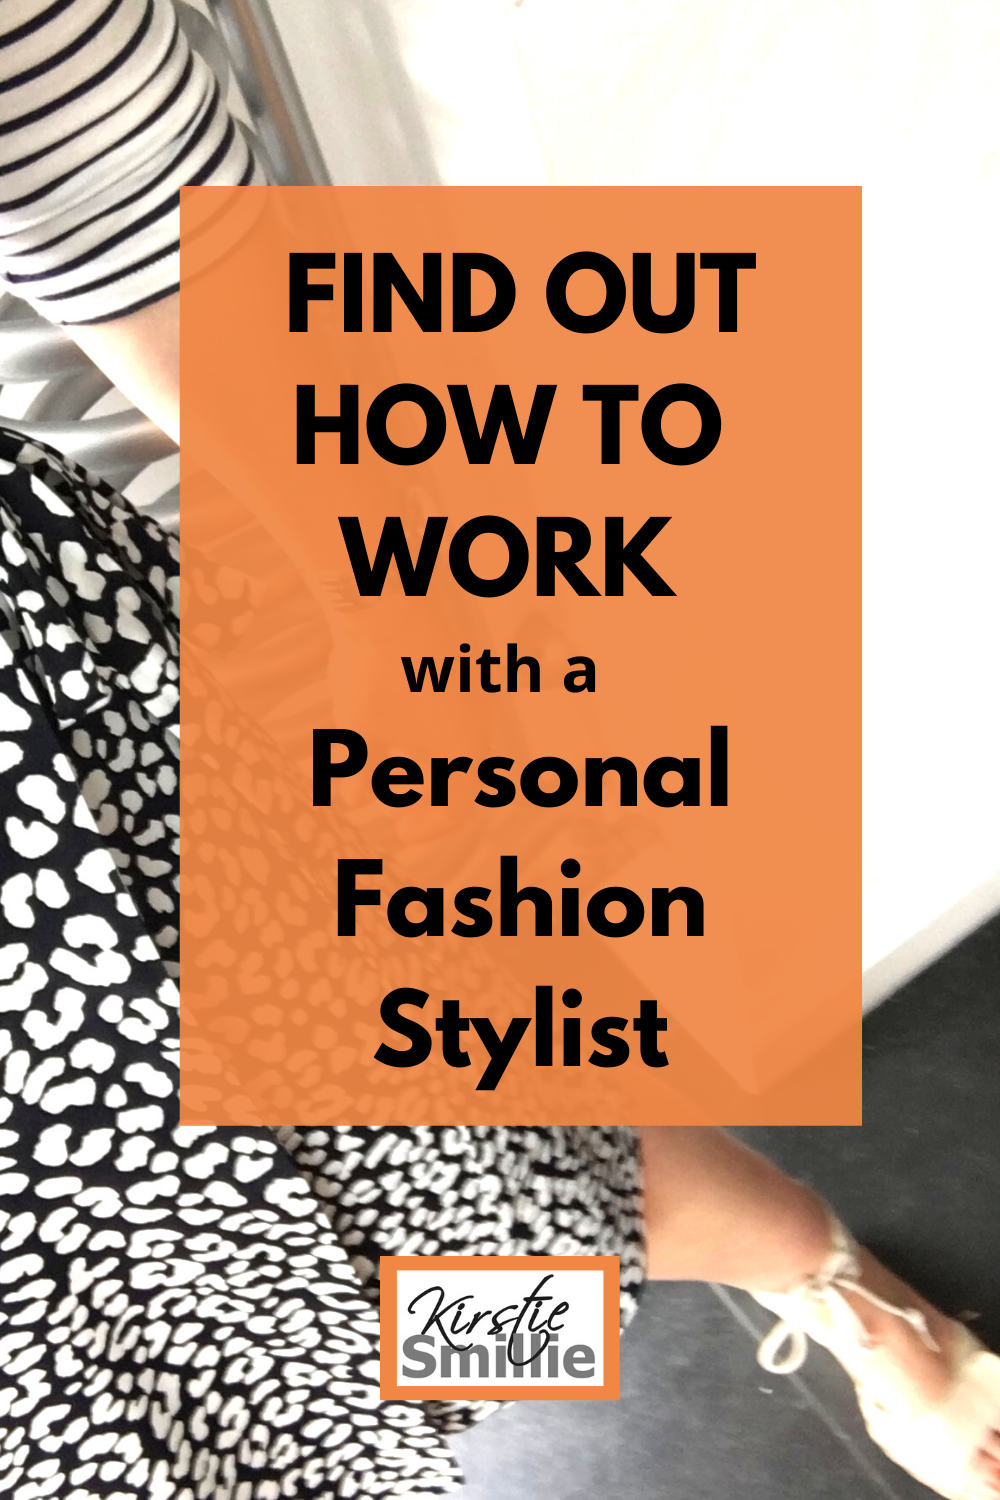 Have you ever thought about working with a Personal Fashion Stylist? It is not just for celebrities these days, but helps you find your own style. When you work with a Personal Fashion stylist you will learn about your body shape, stylish outfits, colour and how to find your own looks with a new confidence. I am a UK Personal Fashion Stylist, here to inspire your image confidence. #kirstiesmillie #personalfashionstylist #imageconsultant #whattowear